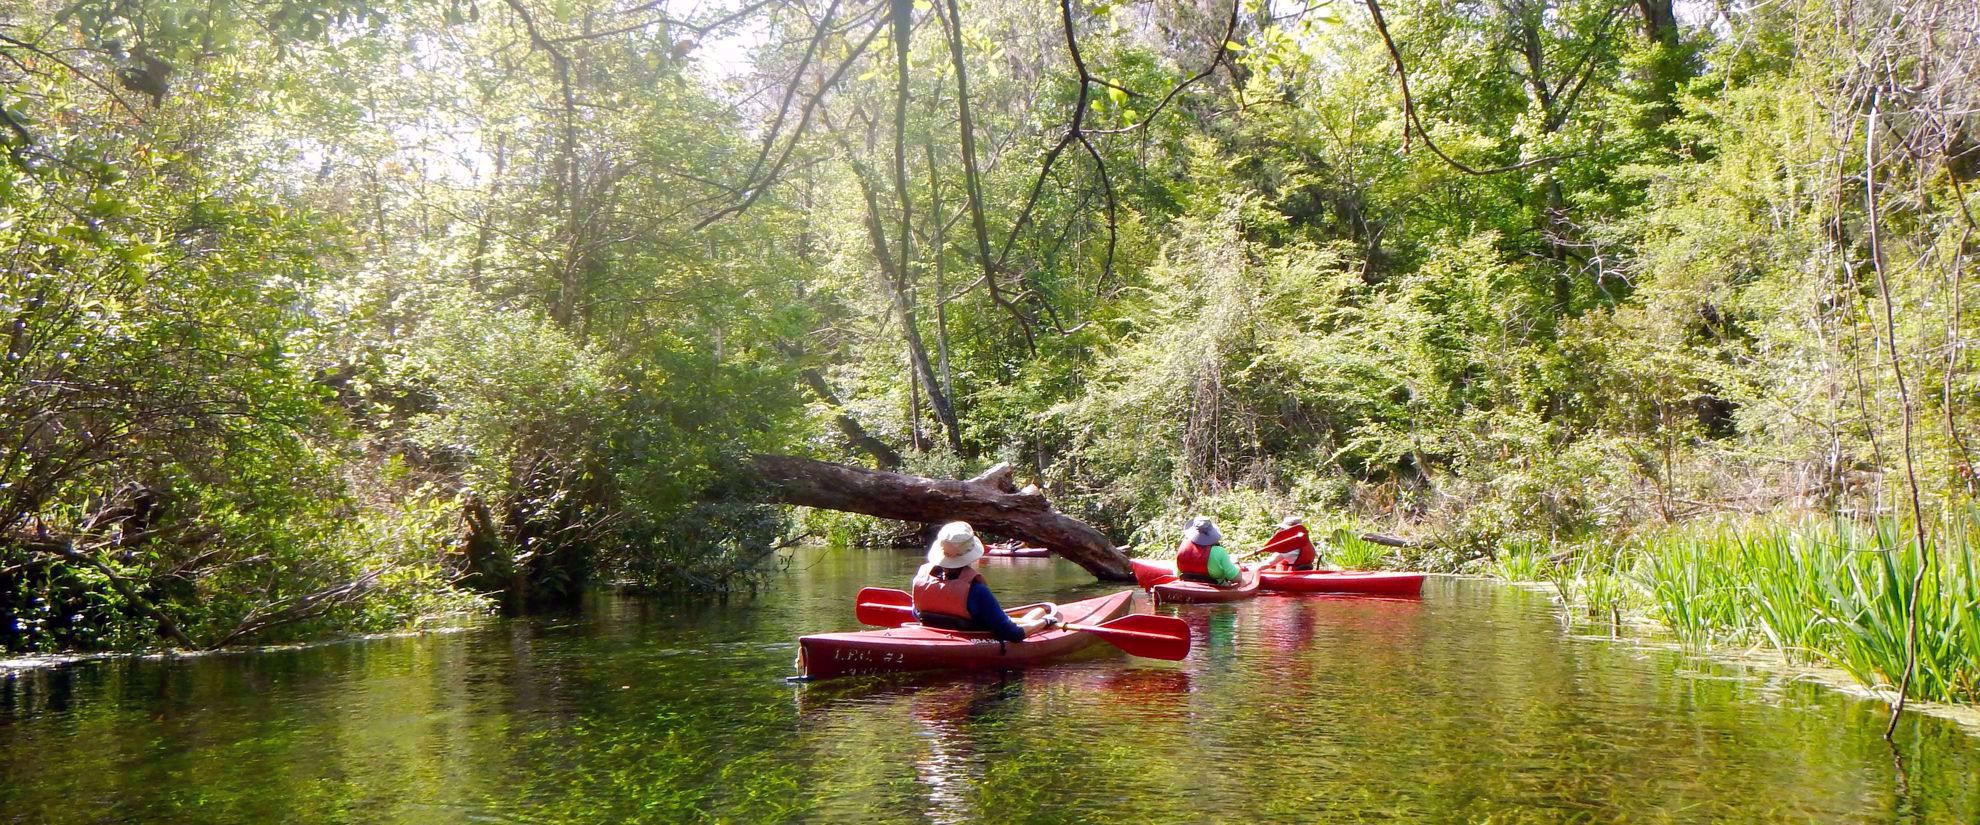 women's travel group kayaking suwannee river